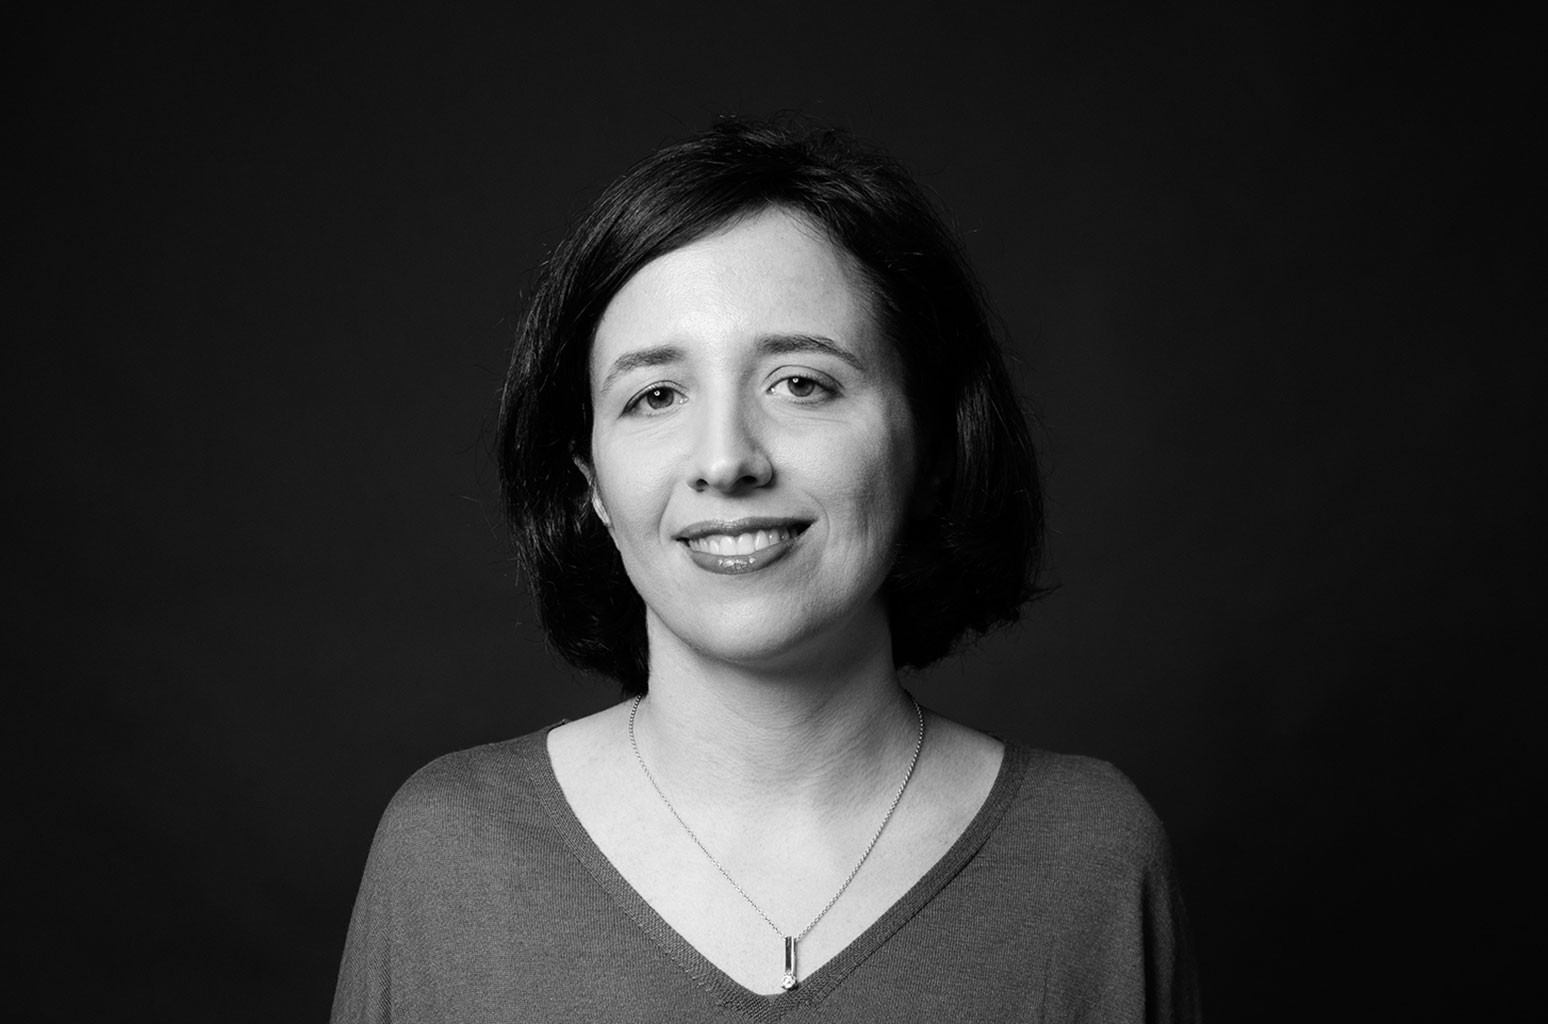 Sony Music France Names First Woman MD: Marie-Anne Robert